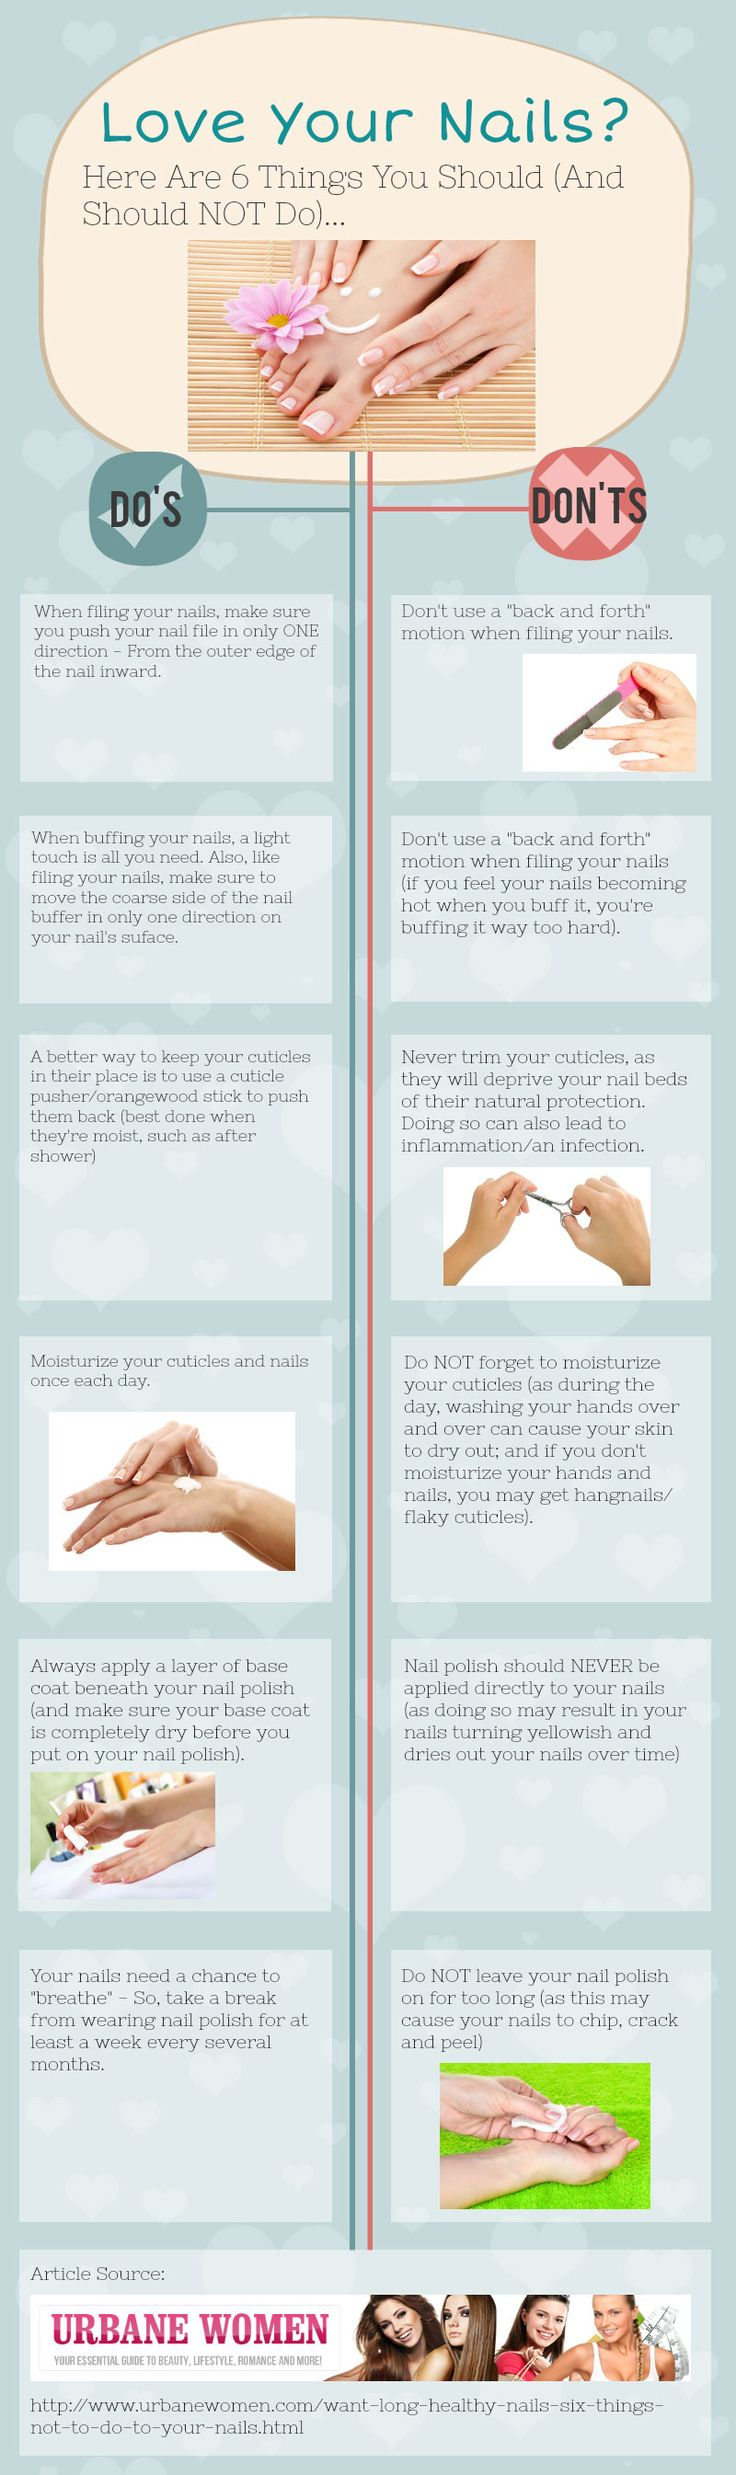 The Do's and Don'ts of taking care of your nails - everyone should know these things